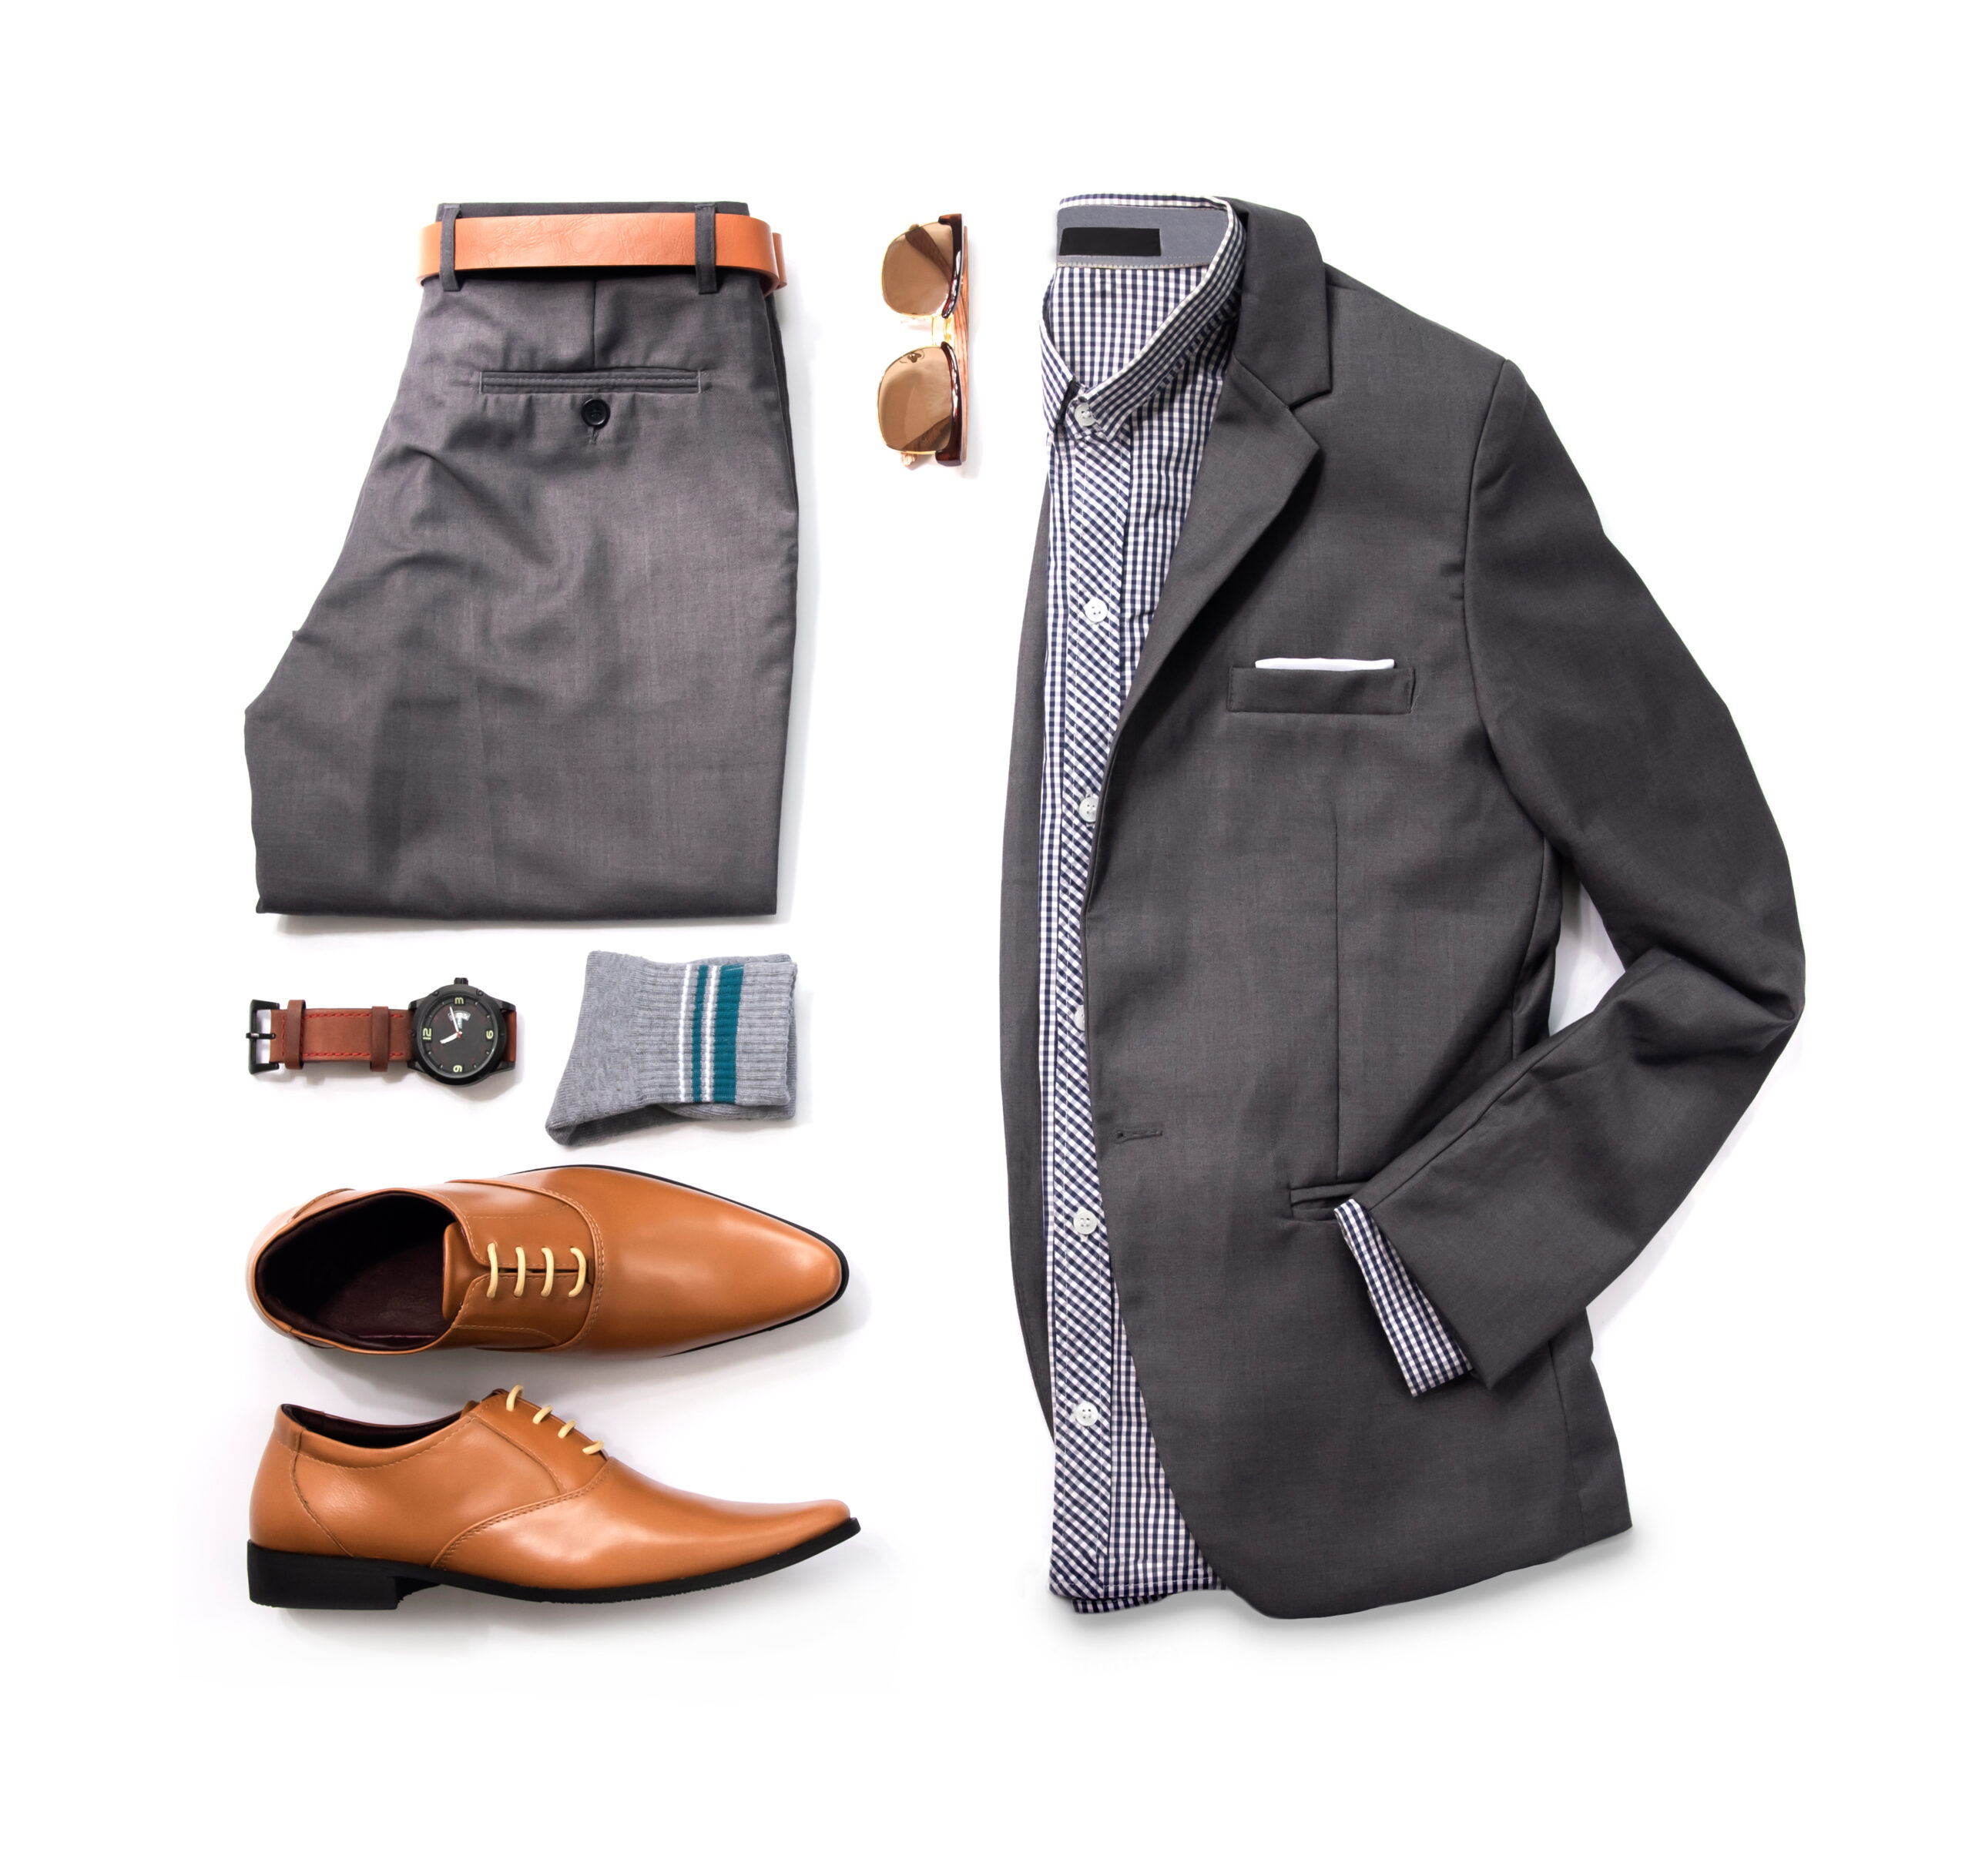 Men's casual outfits for man clothing with gray suit , watch, sunglasses, trousers, socks, shirt and oxford shoes isolate on white background, Top view. pack shot